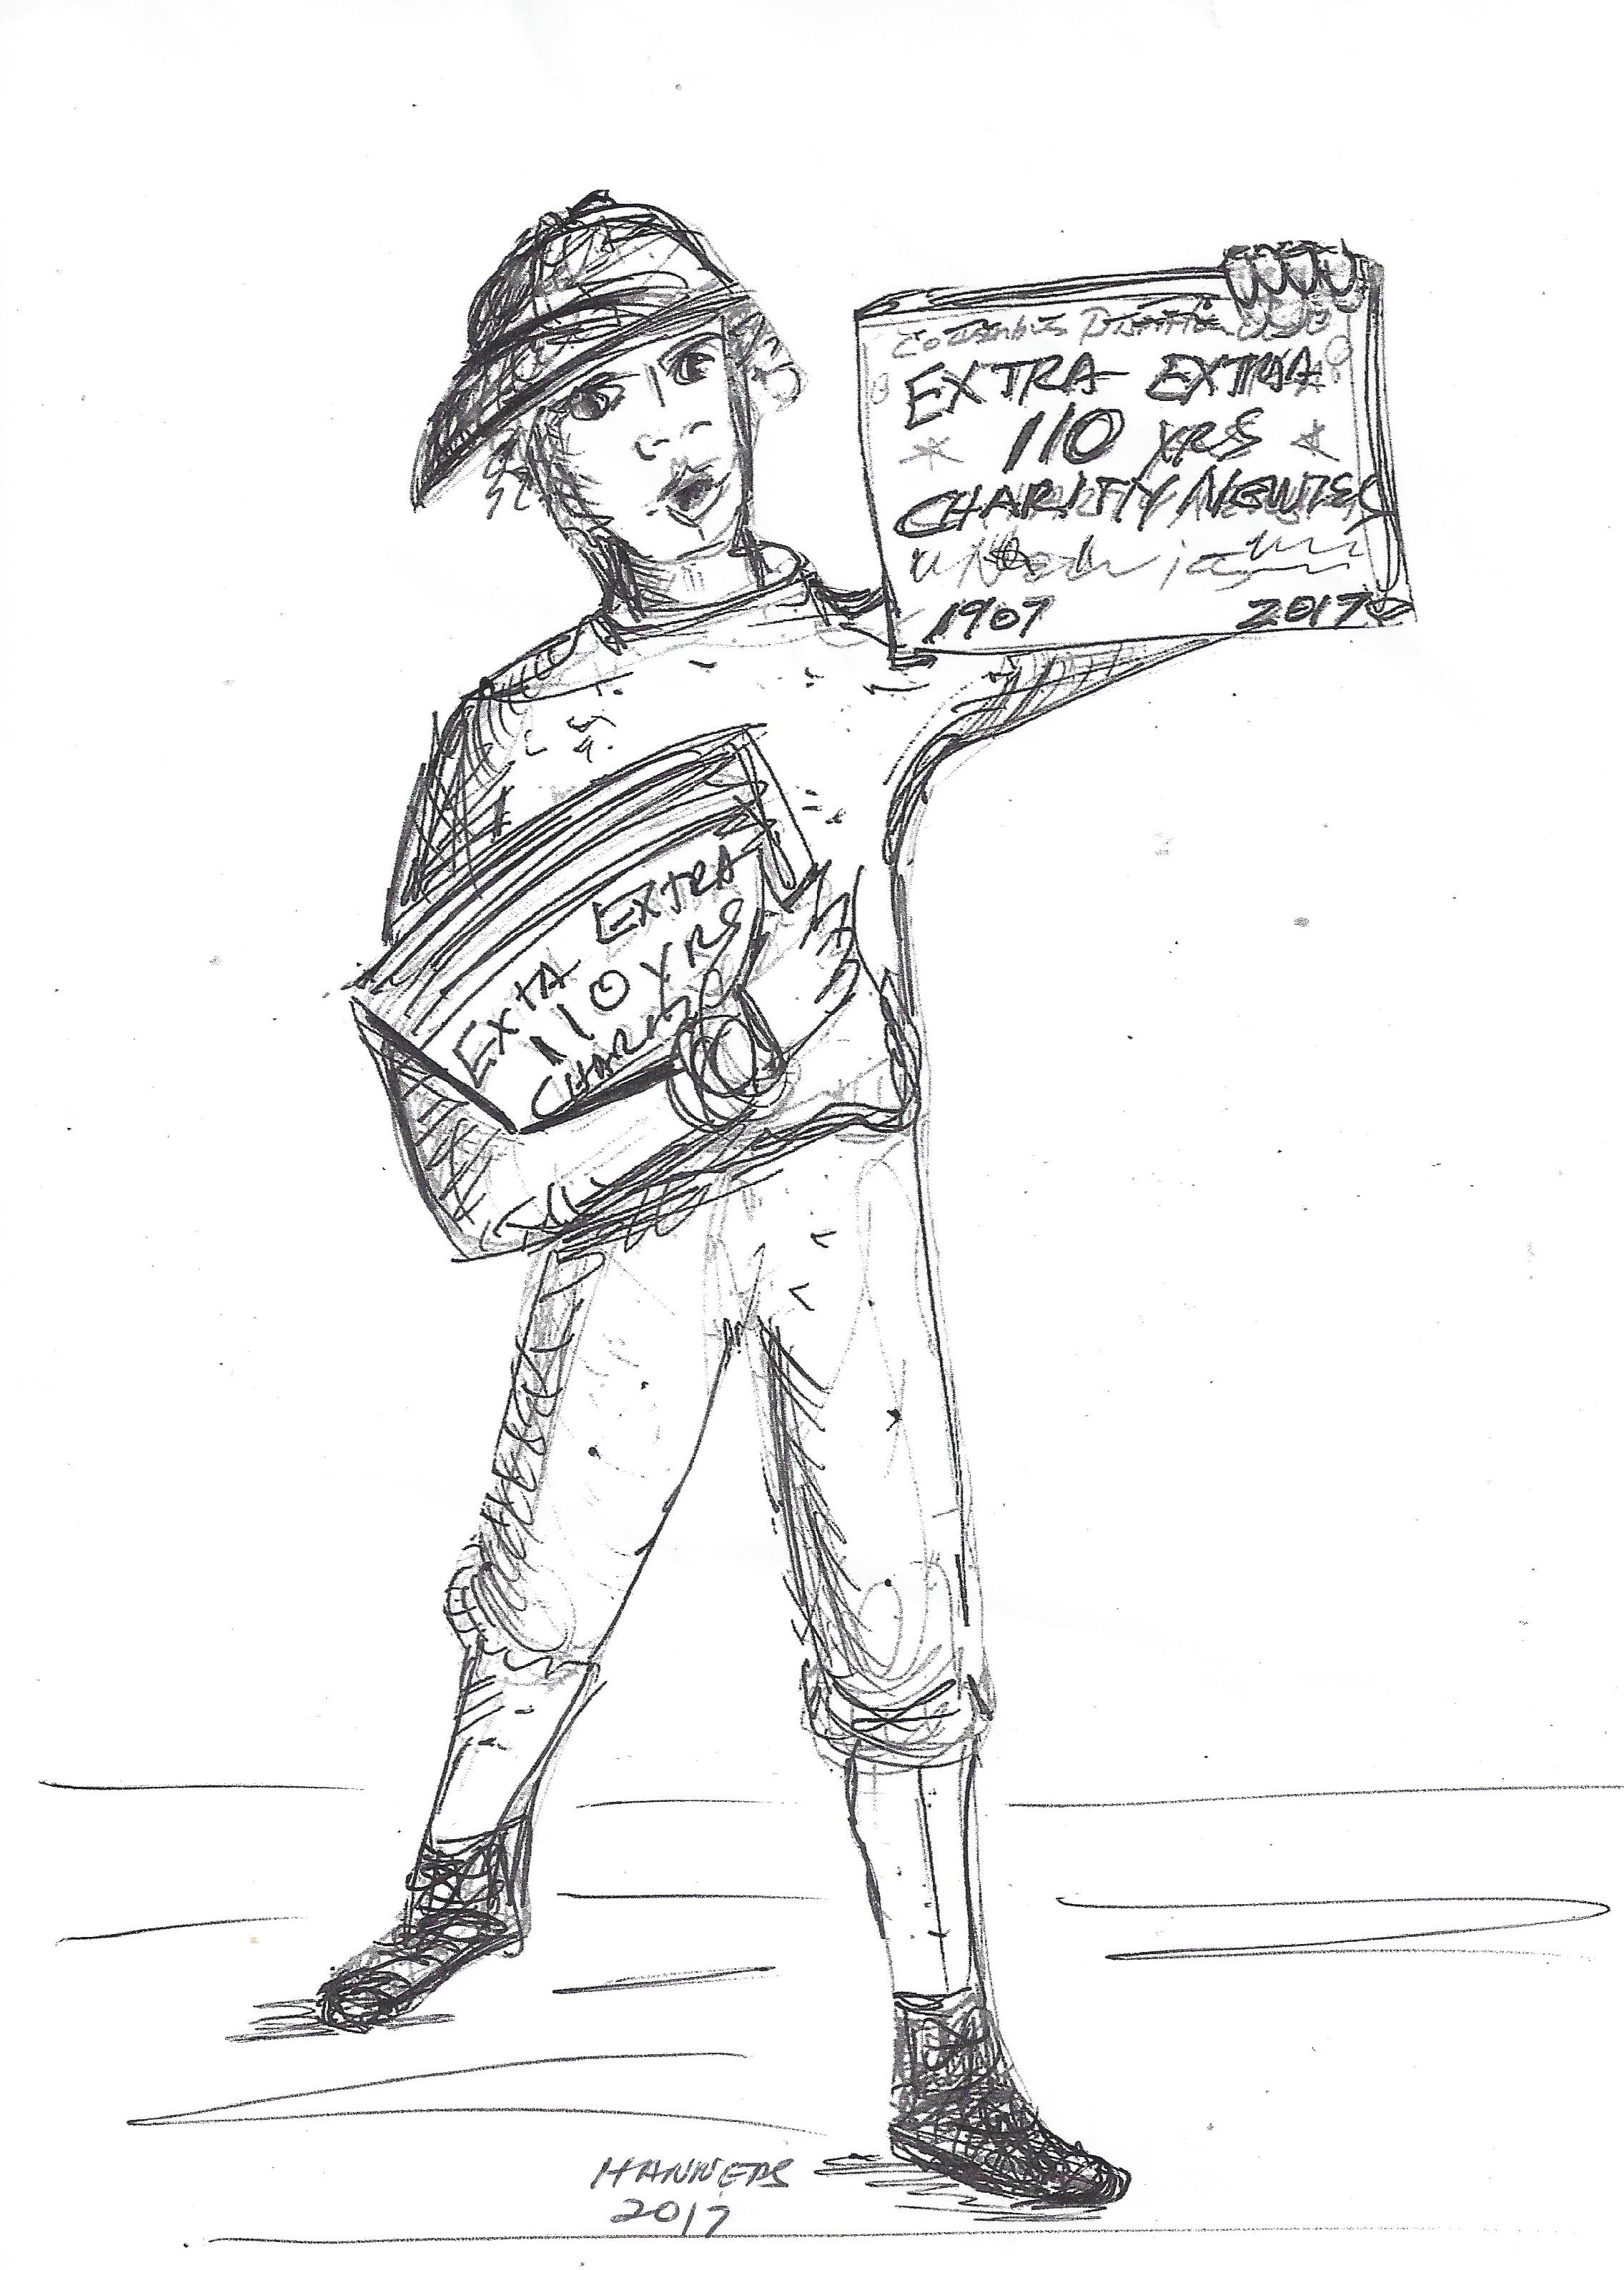 Newsboy Artist rendition